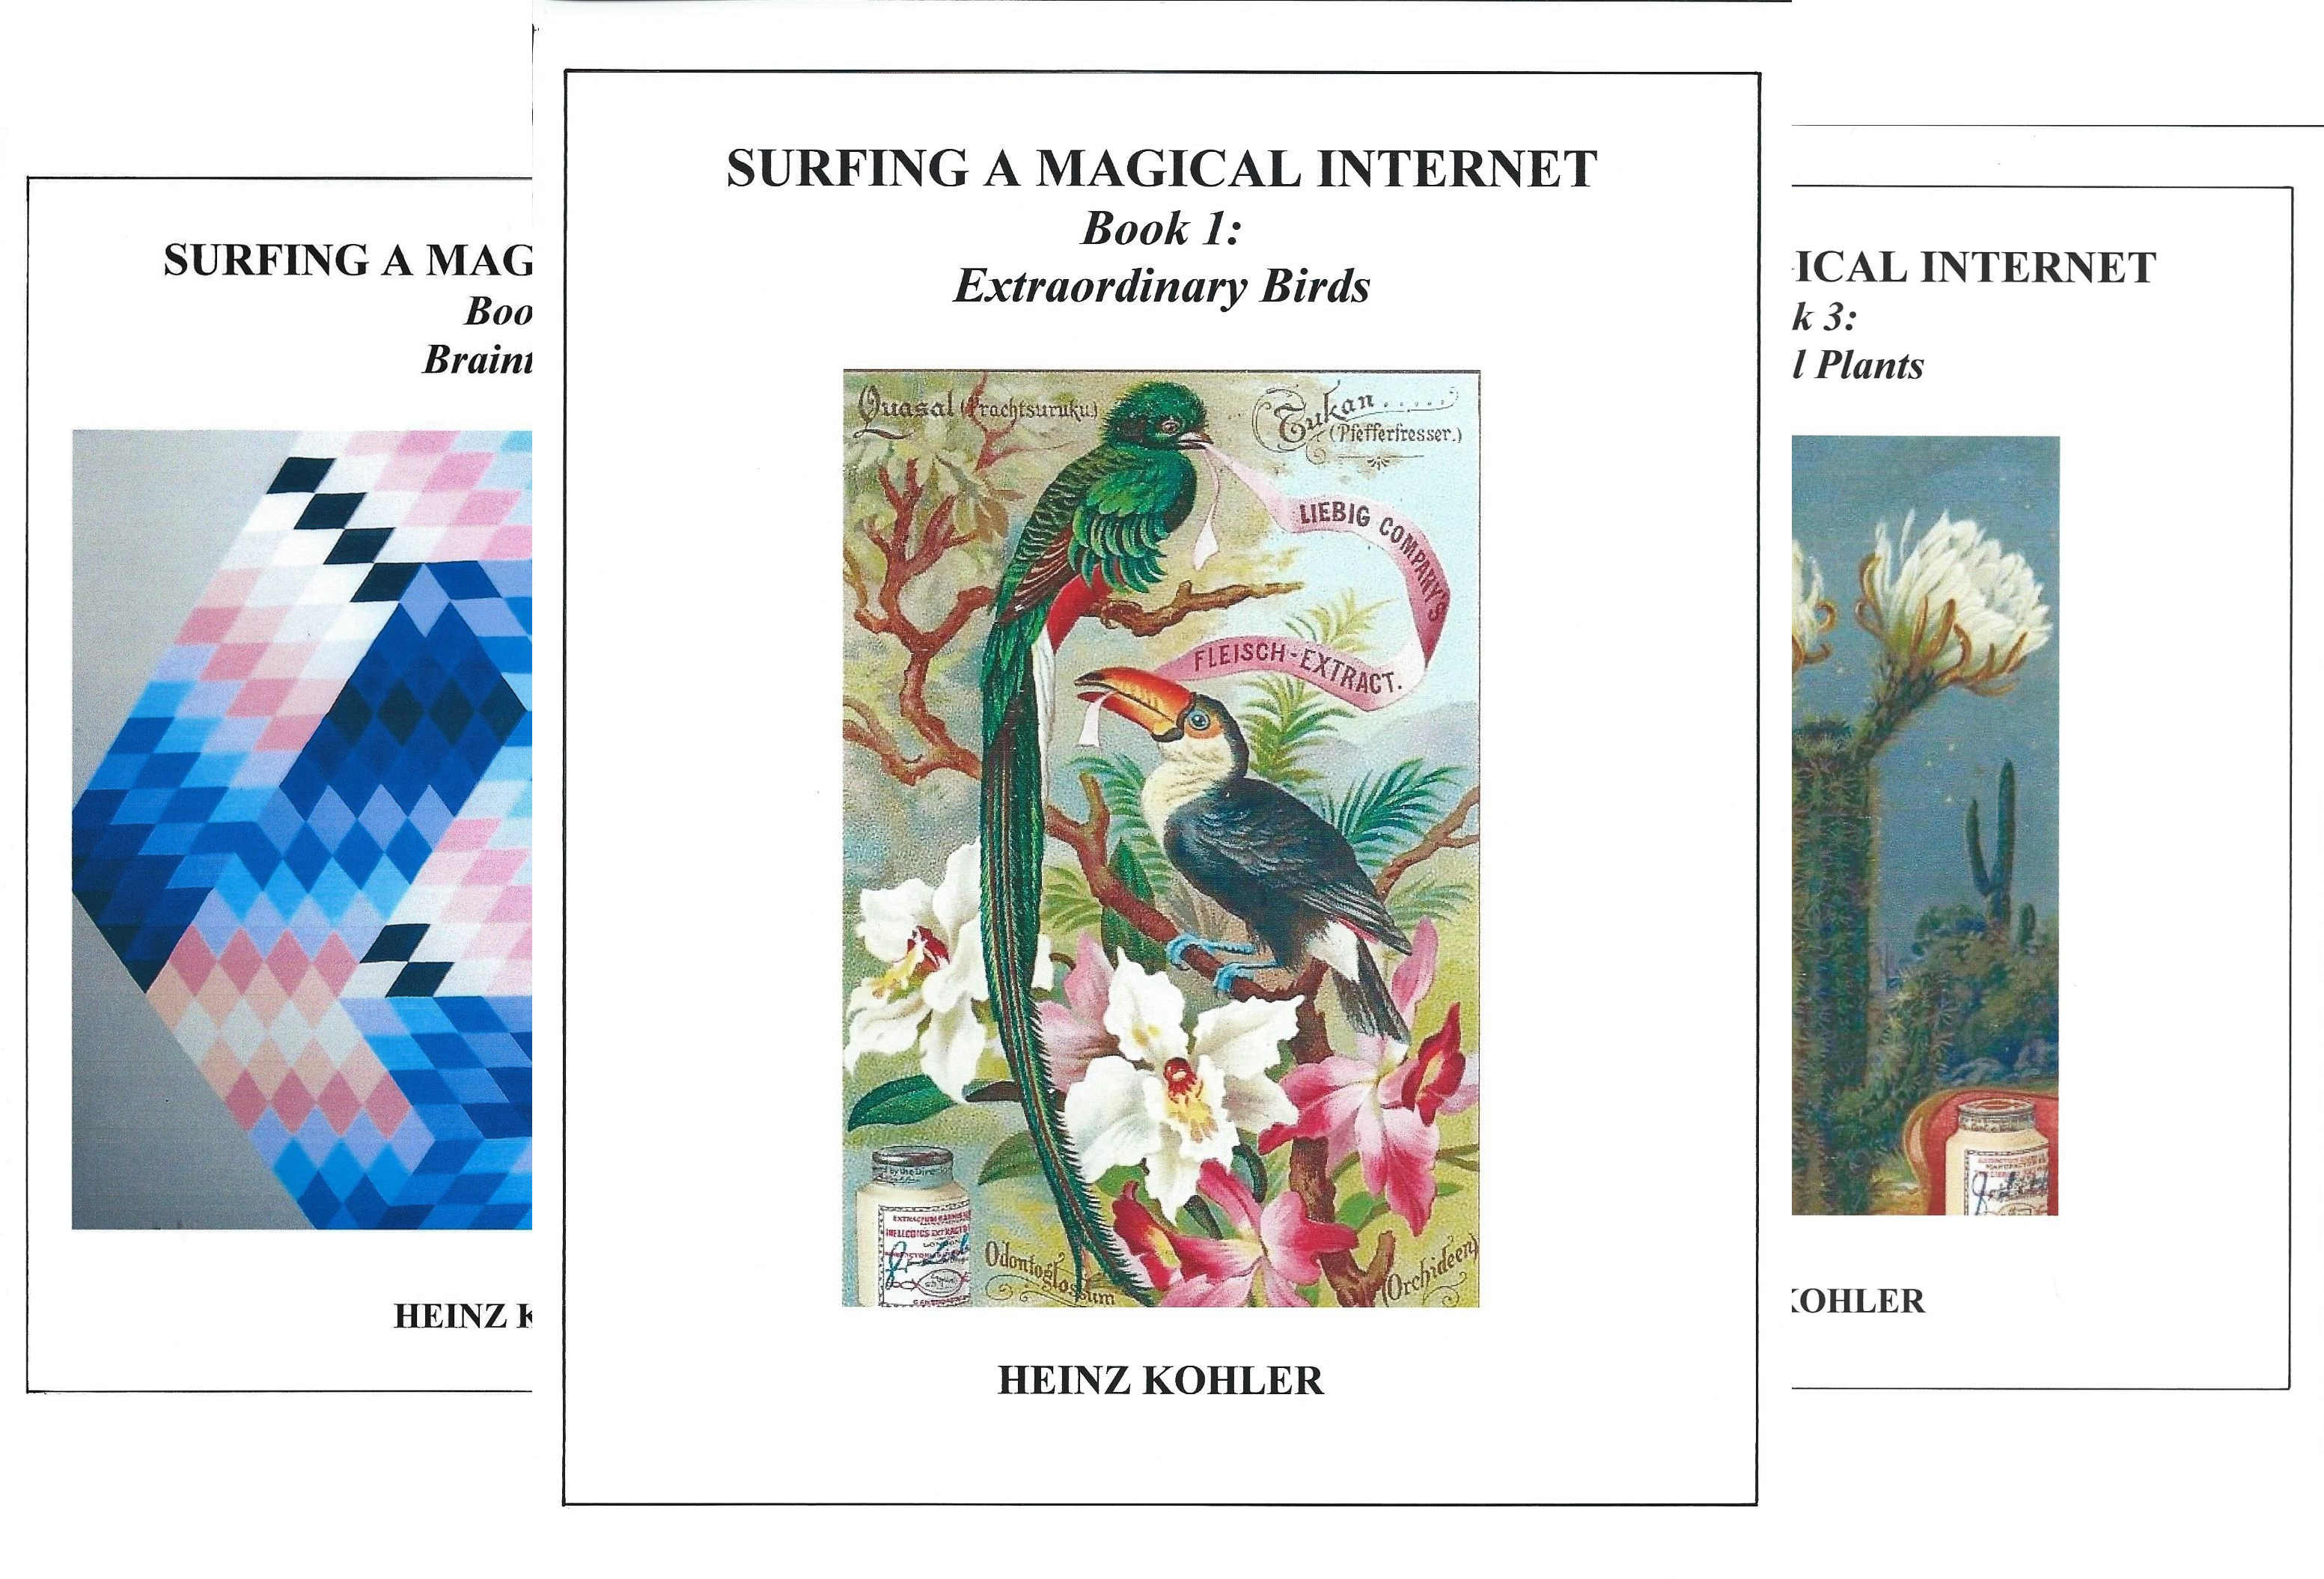 SURFING A MAGICAL INTERNET (18 Book Series)